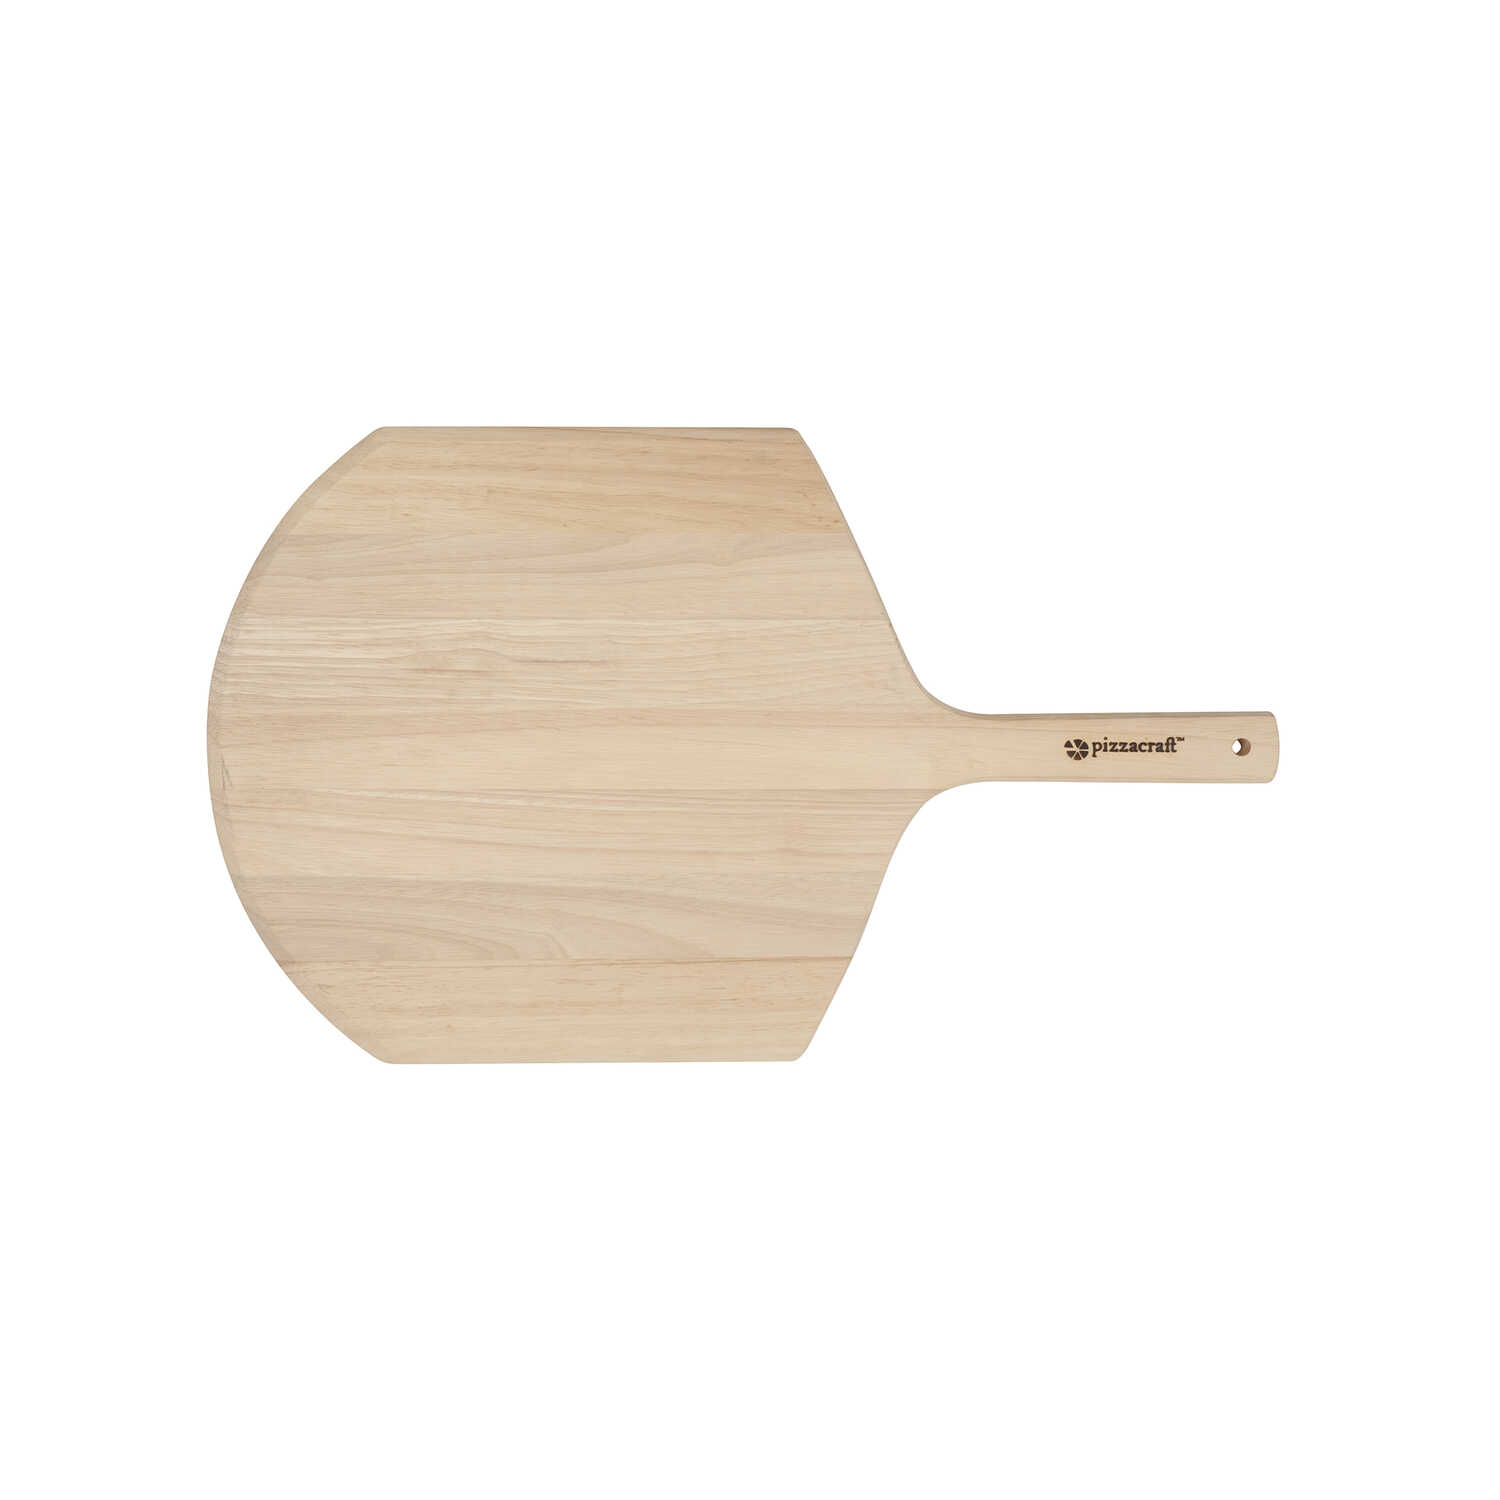 Pizzacraft  12 in. W x 20 in. L Natural  Hardwood  Pizza Peel